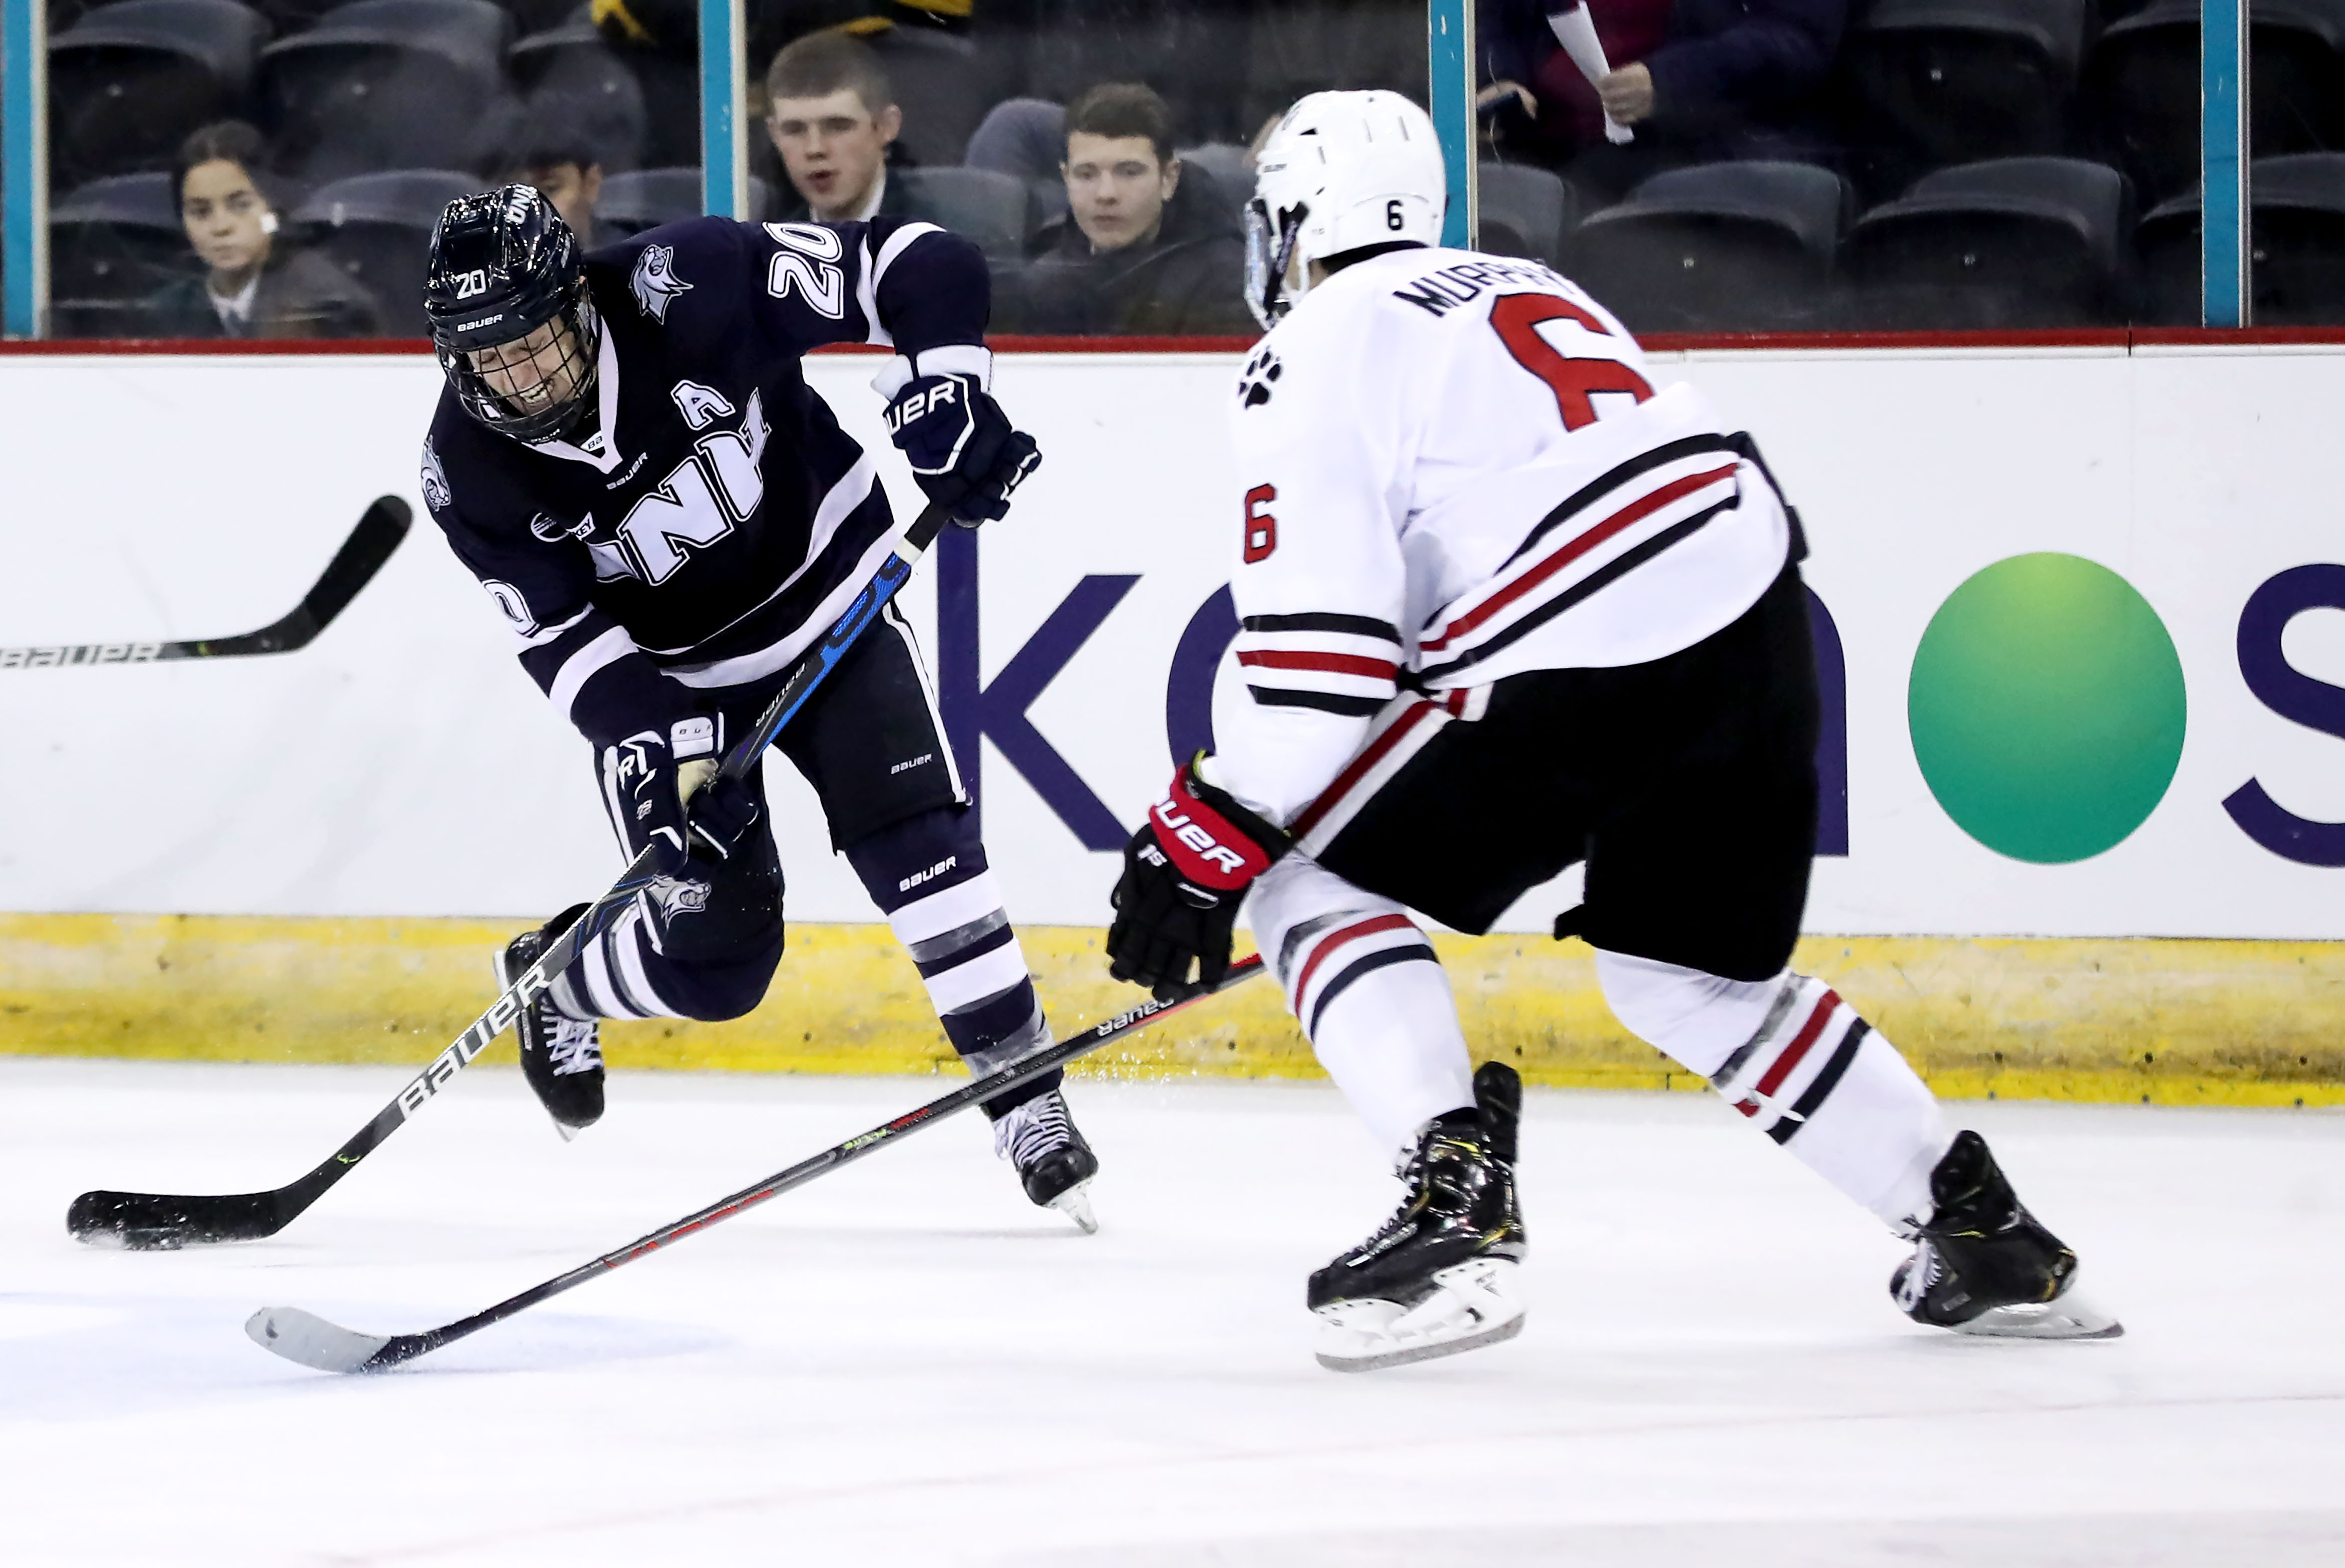 Northeastern Huskies v New Hampshire Wildcats - Friendship Four